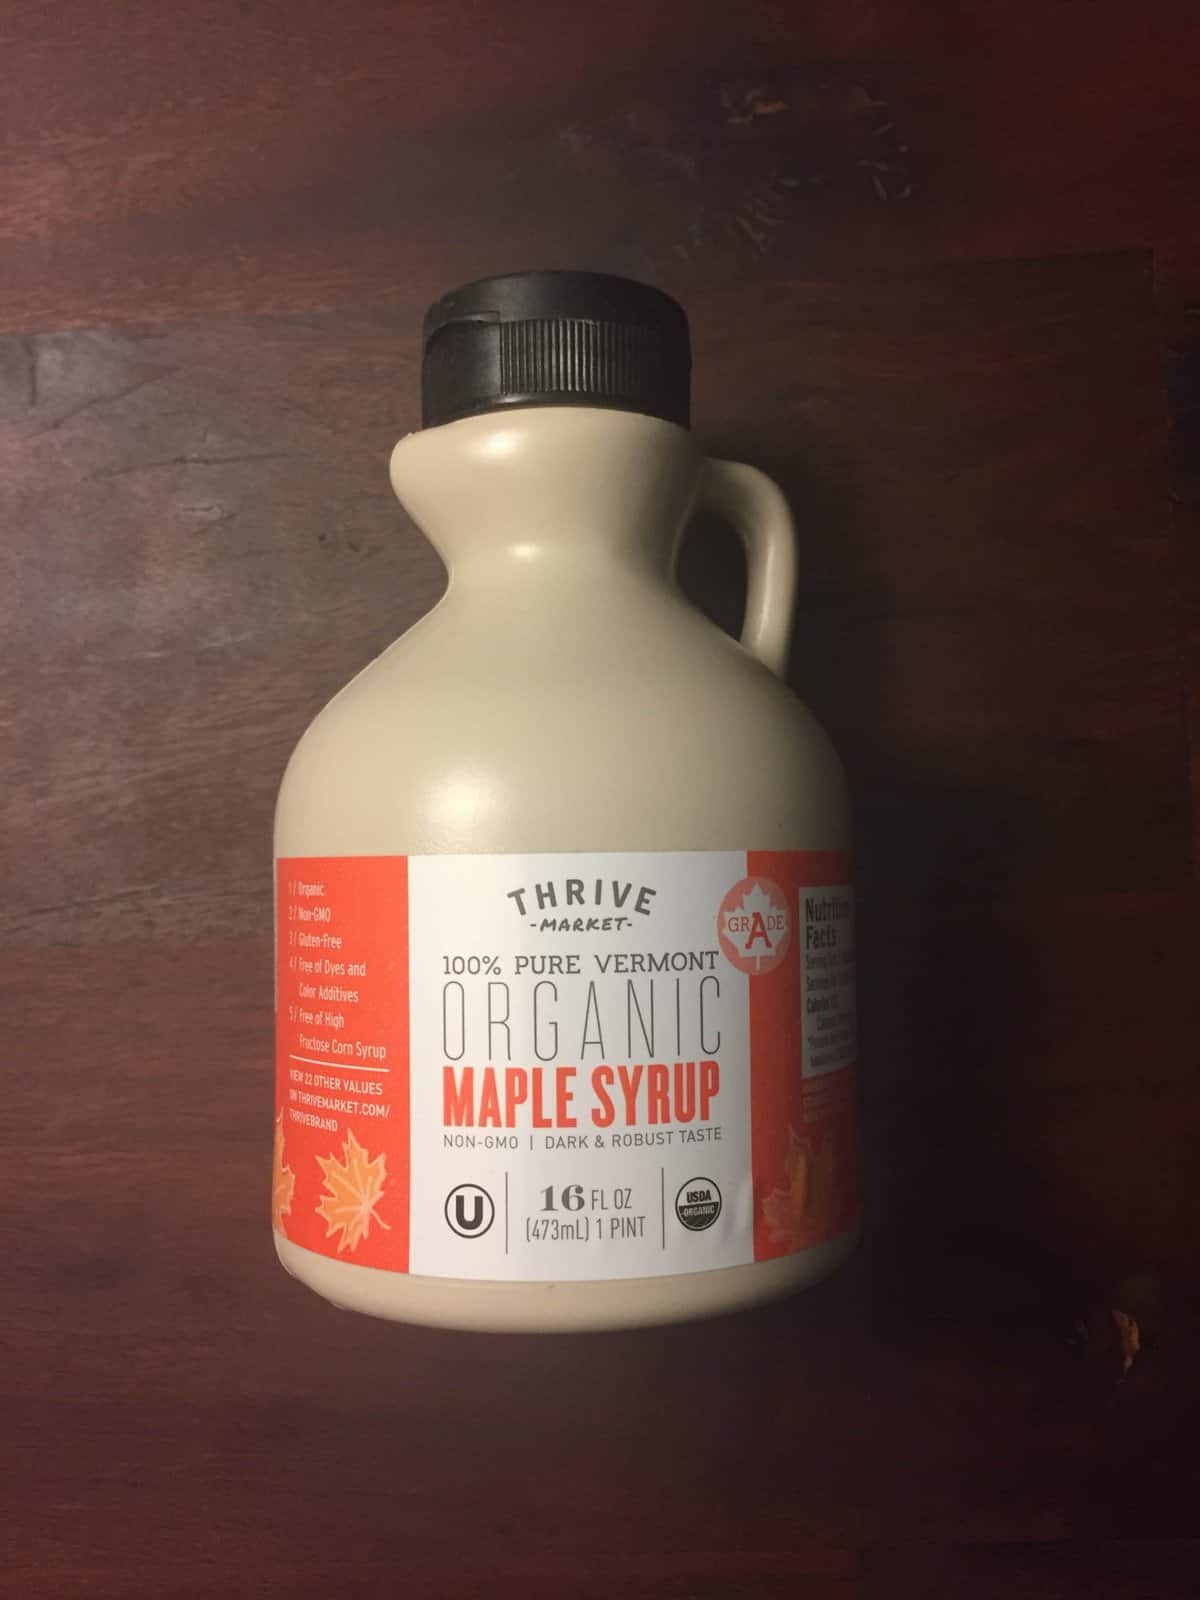 Thrive Market brand organic maple syrup